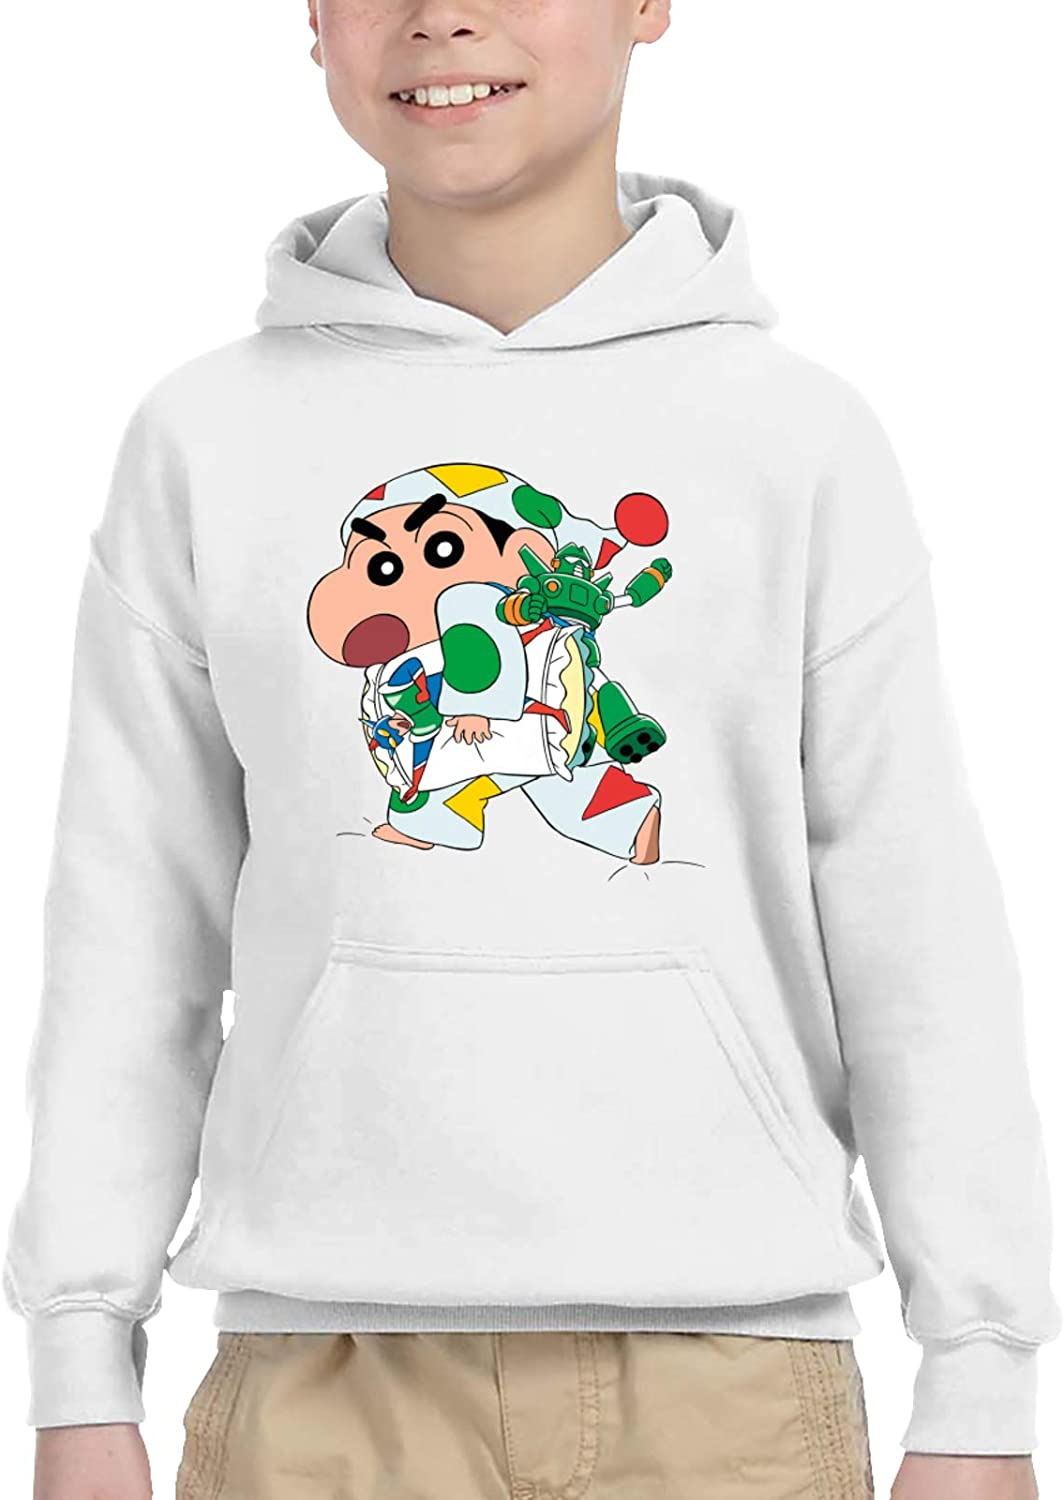 girl Casual Pullover Shin Chan Customized Funny Hooded Jacket